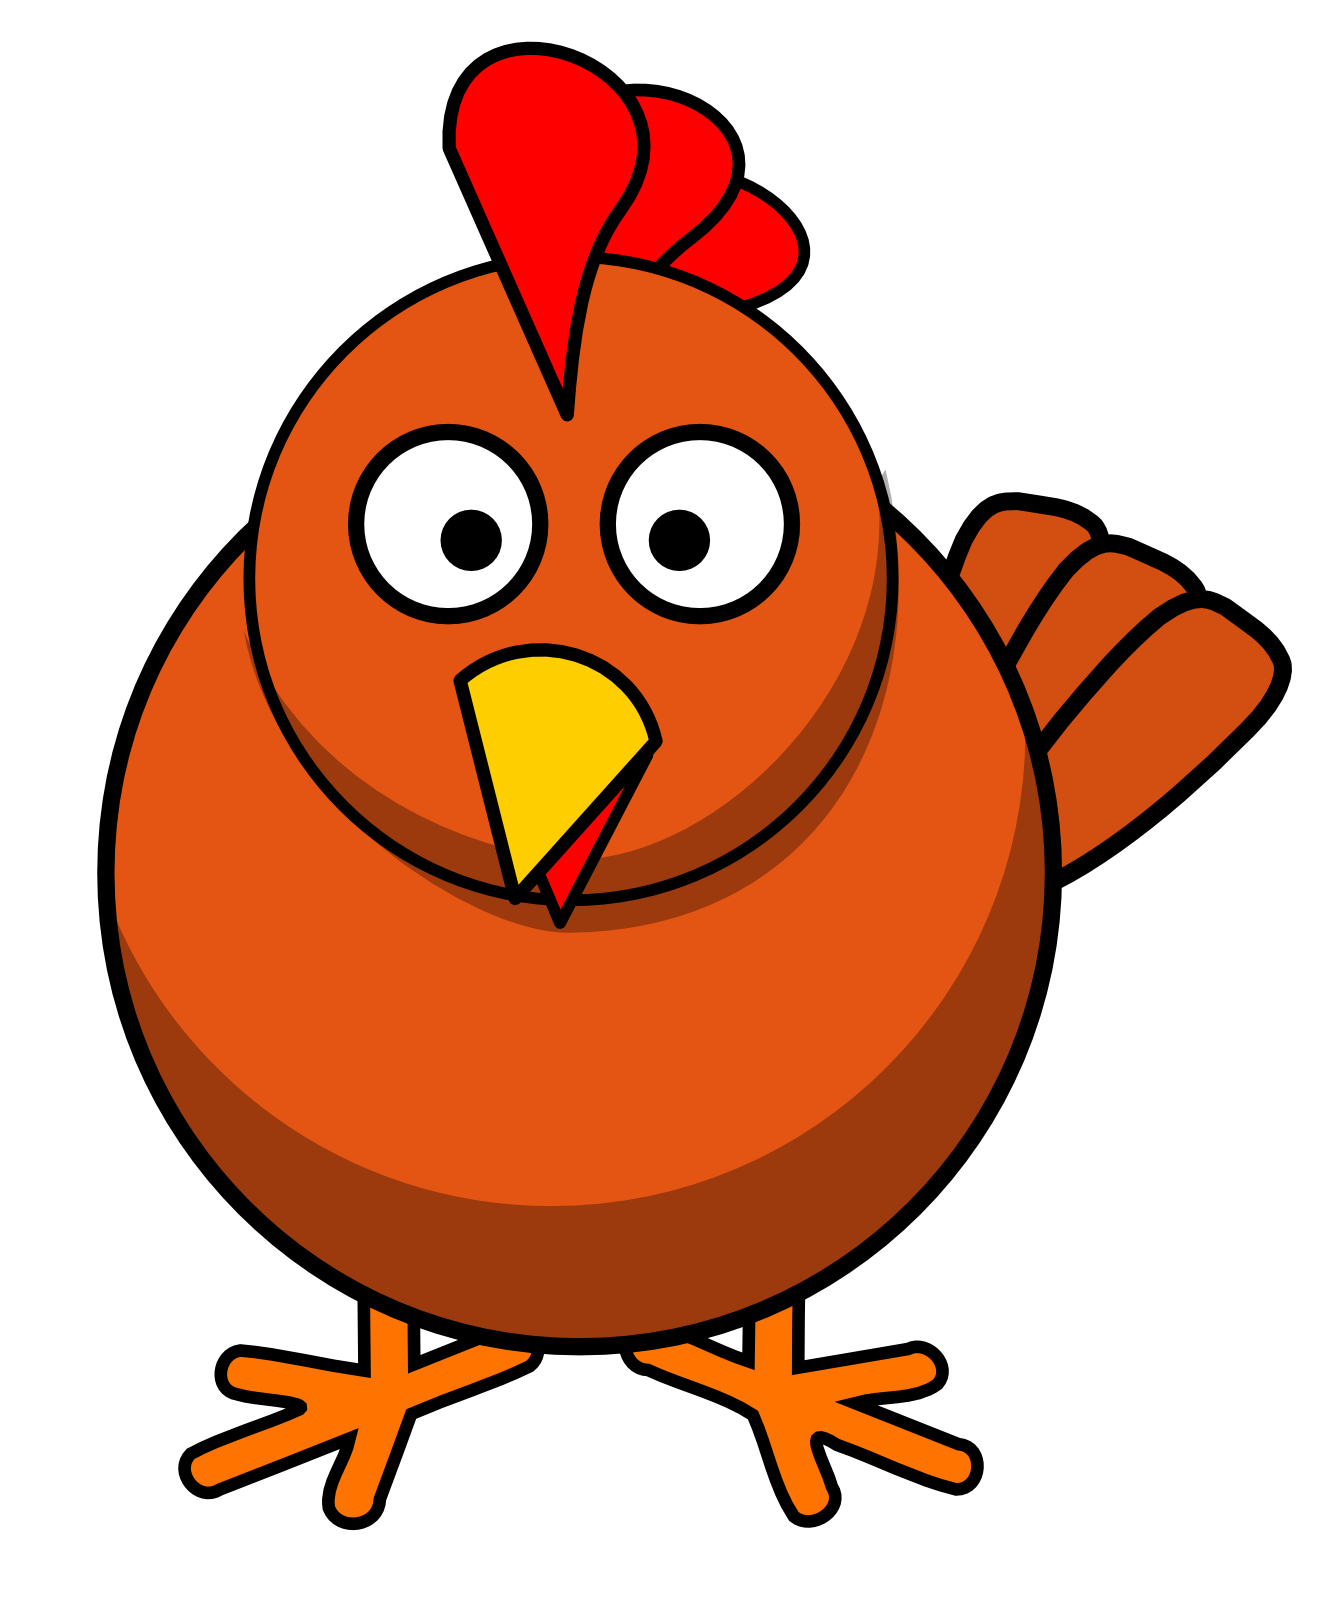 French Fries clipart crinkle cut Chicken clipart chicken chicken clipart